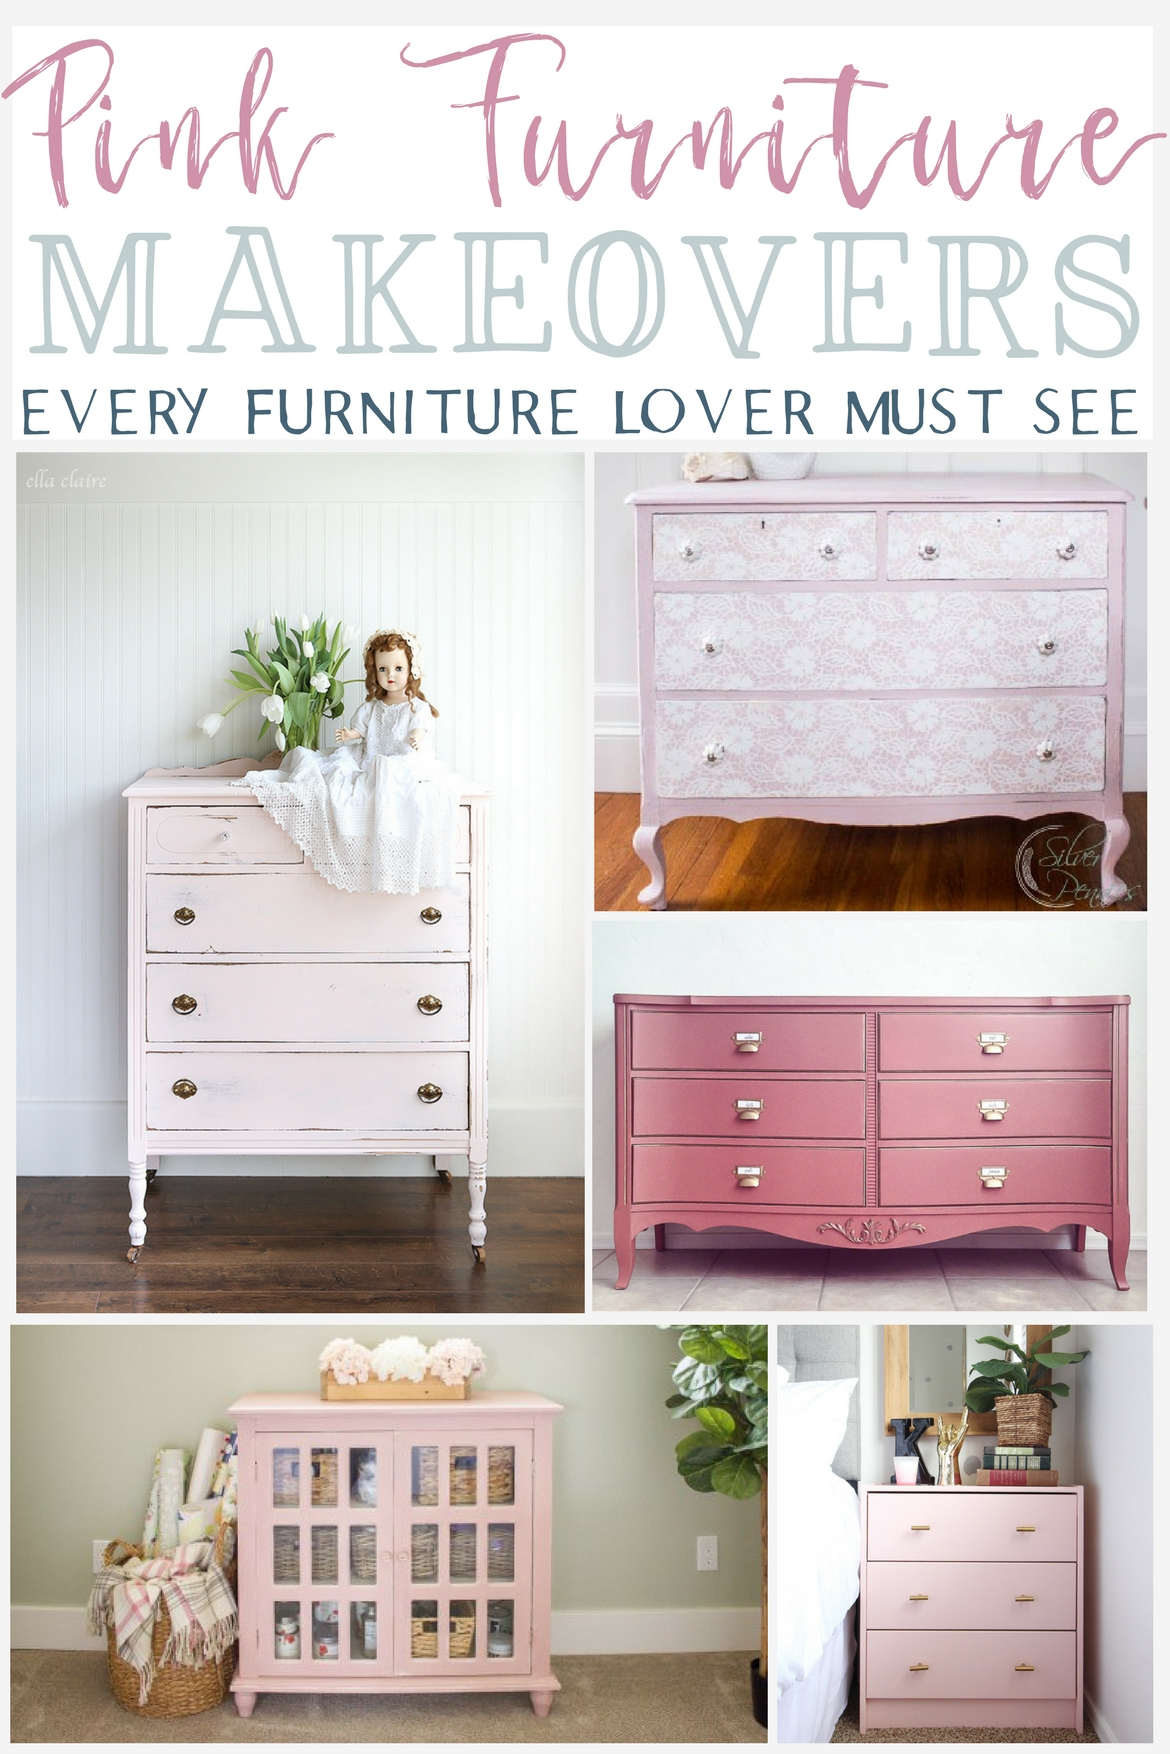 10 Pink Furniture Makeovers Every Furniture Lover Must See The